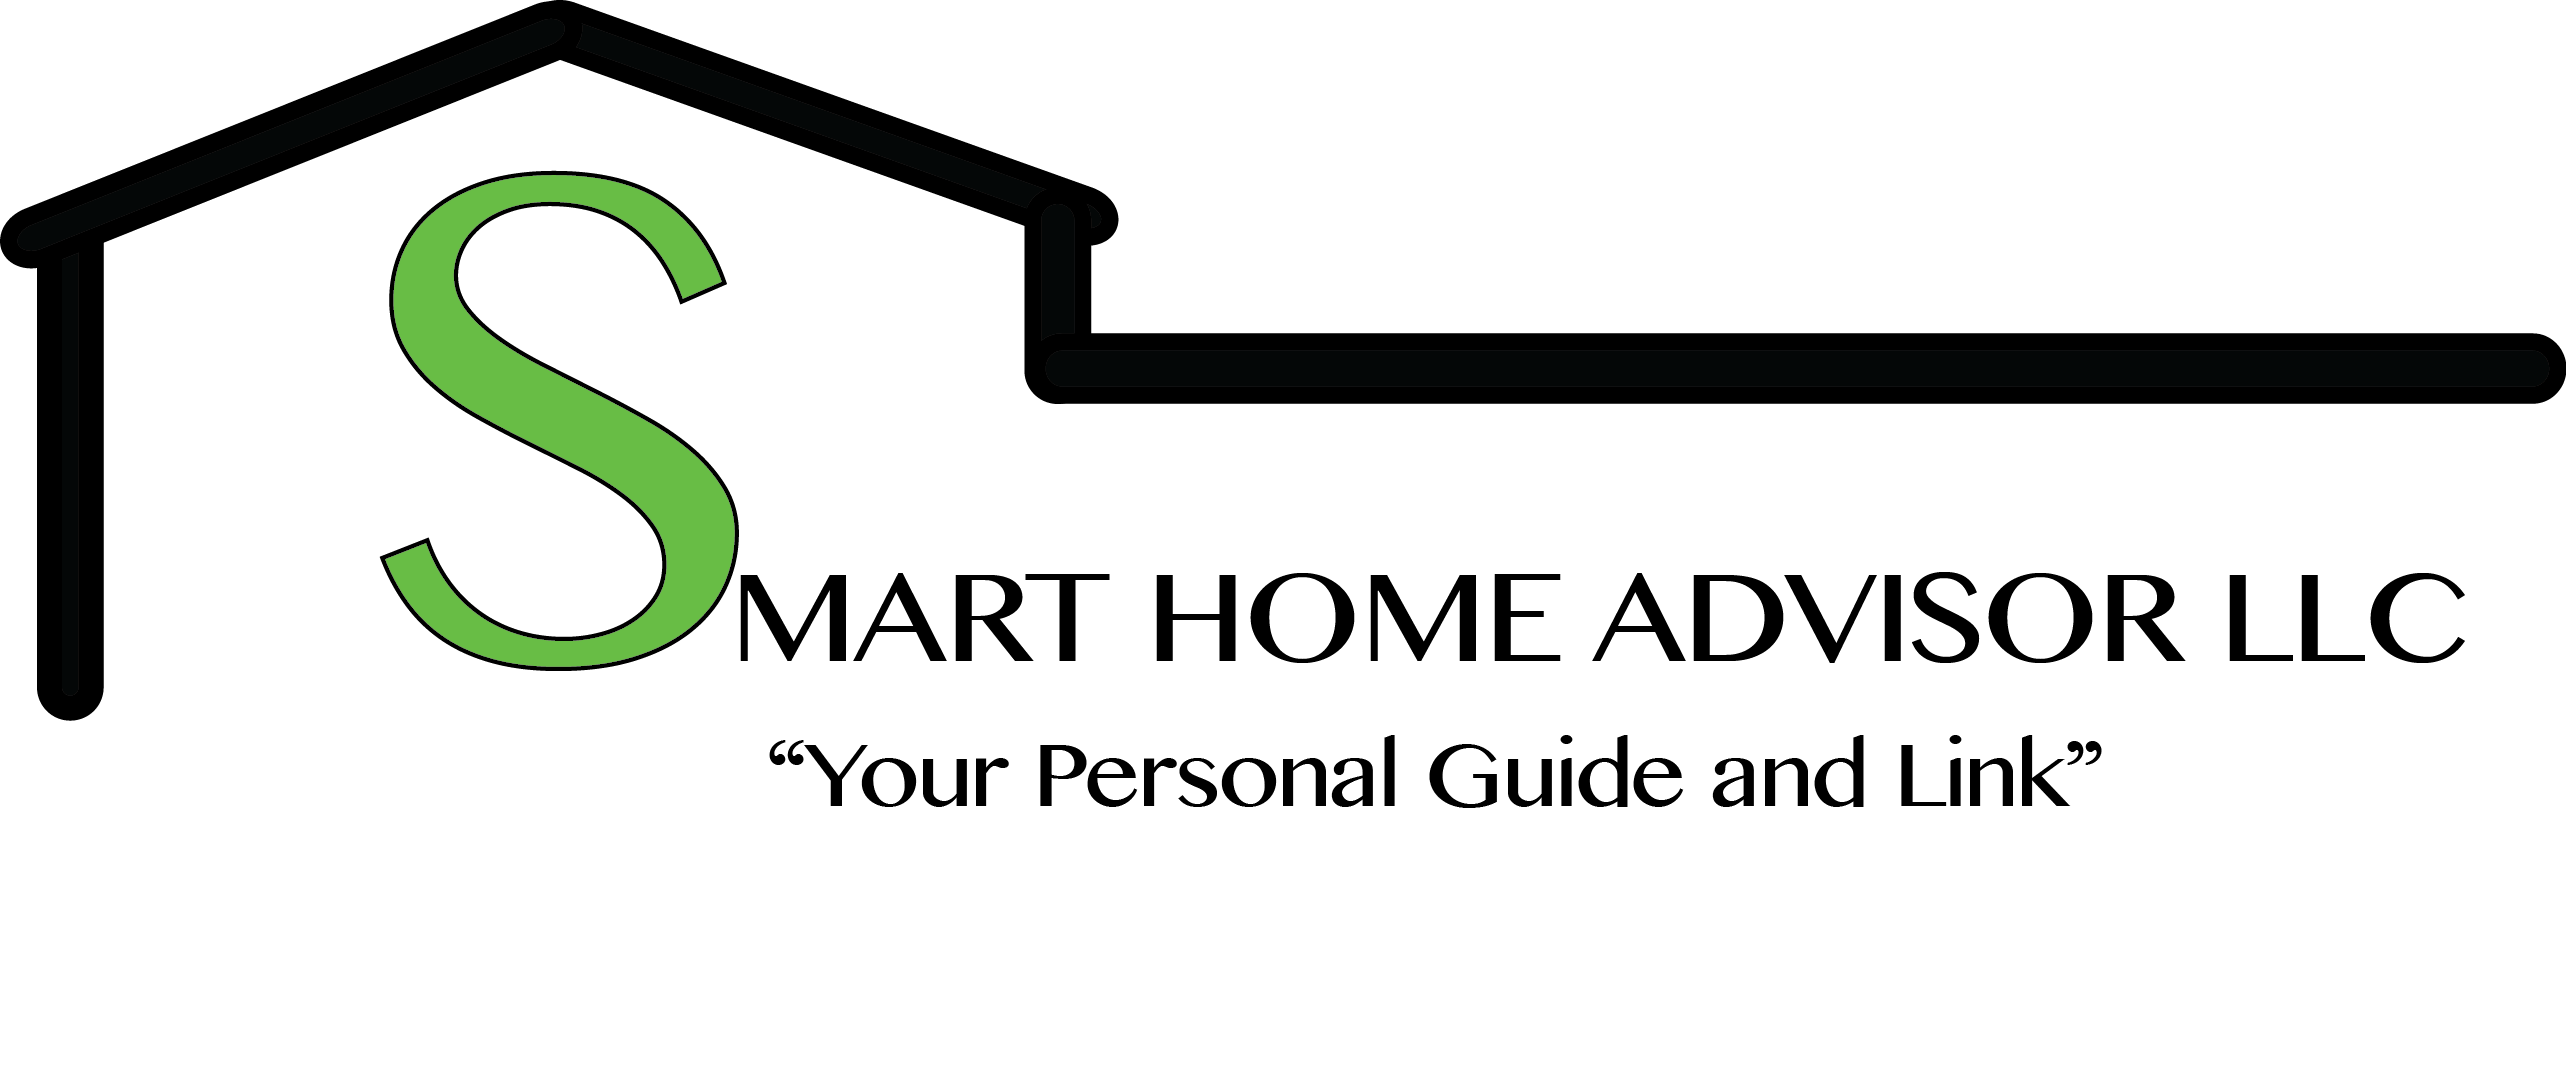 Image result for SMART HOME ADVISOR, LLC logo